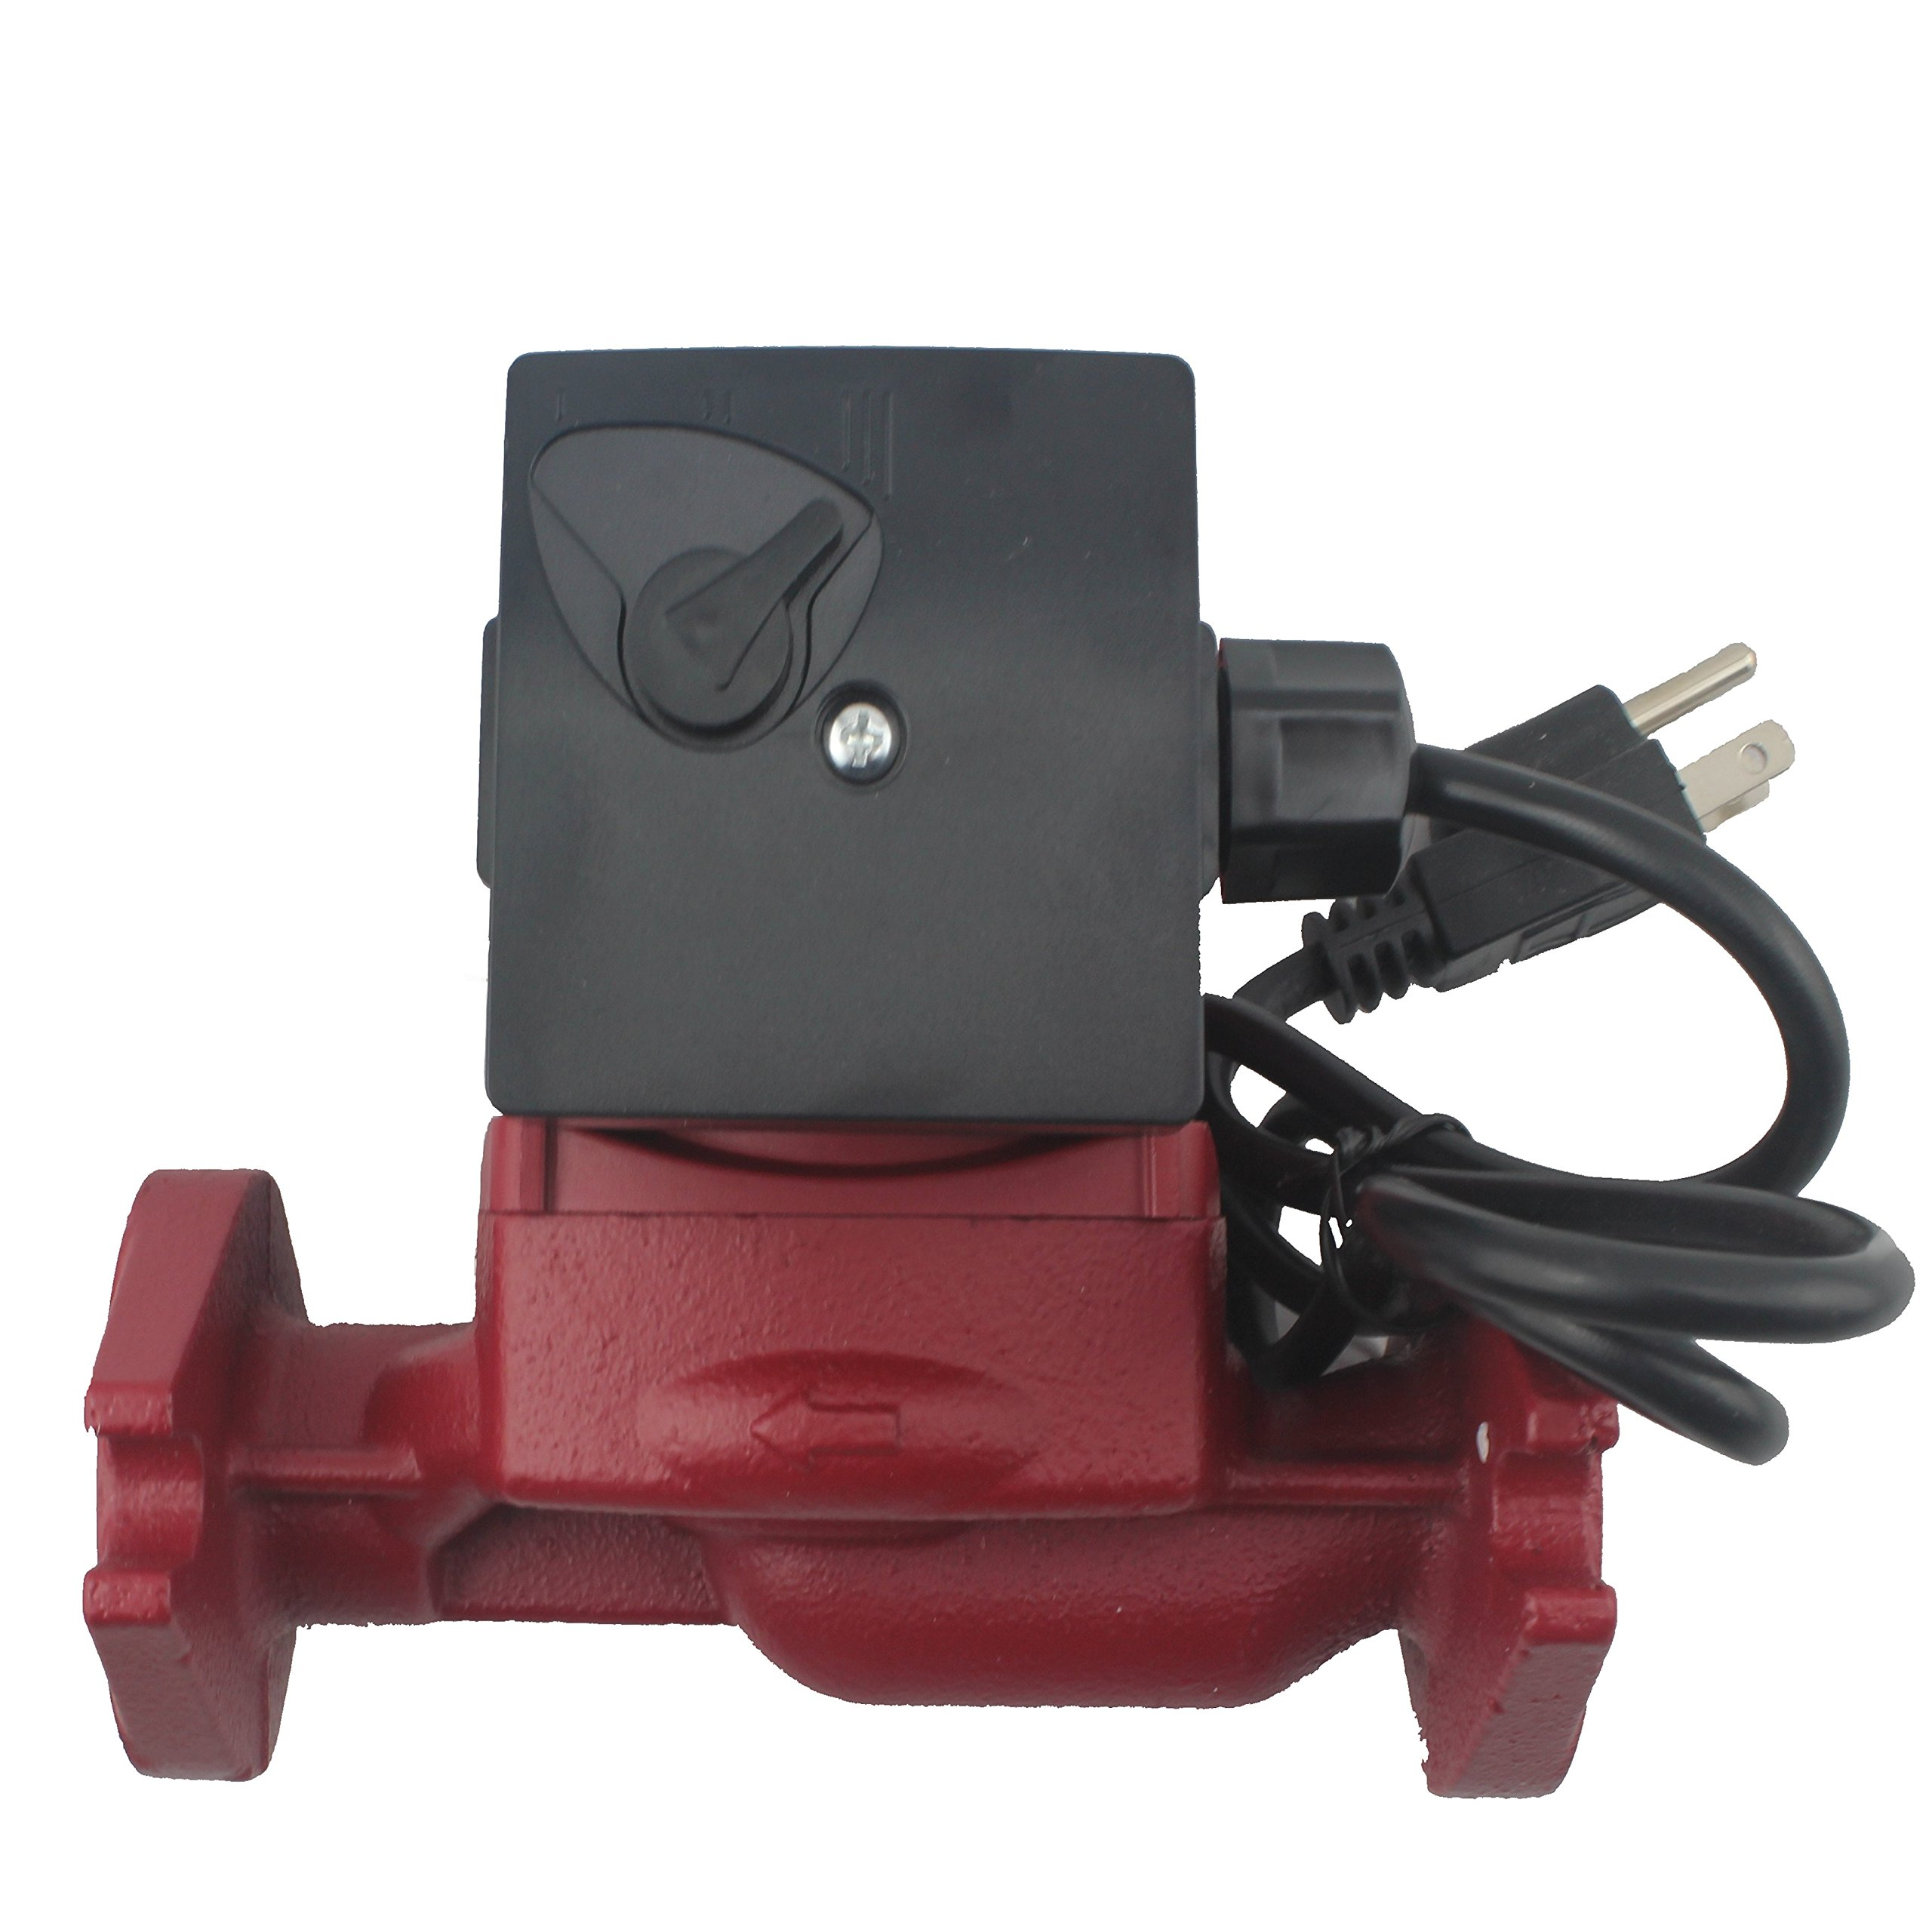 WiseWater Circulation/Circulating Pump with Internal Threaded Flanges - Up to 19.7 Feet Head Range, 3 Speed Switchable for Hydronic Radiant Heating and Plumbing by AB (Image #3)